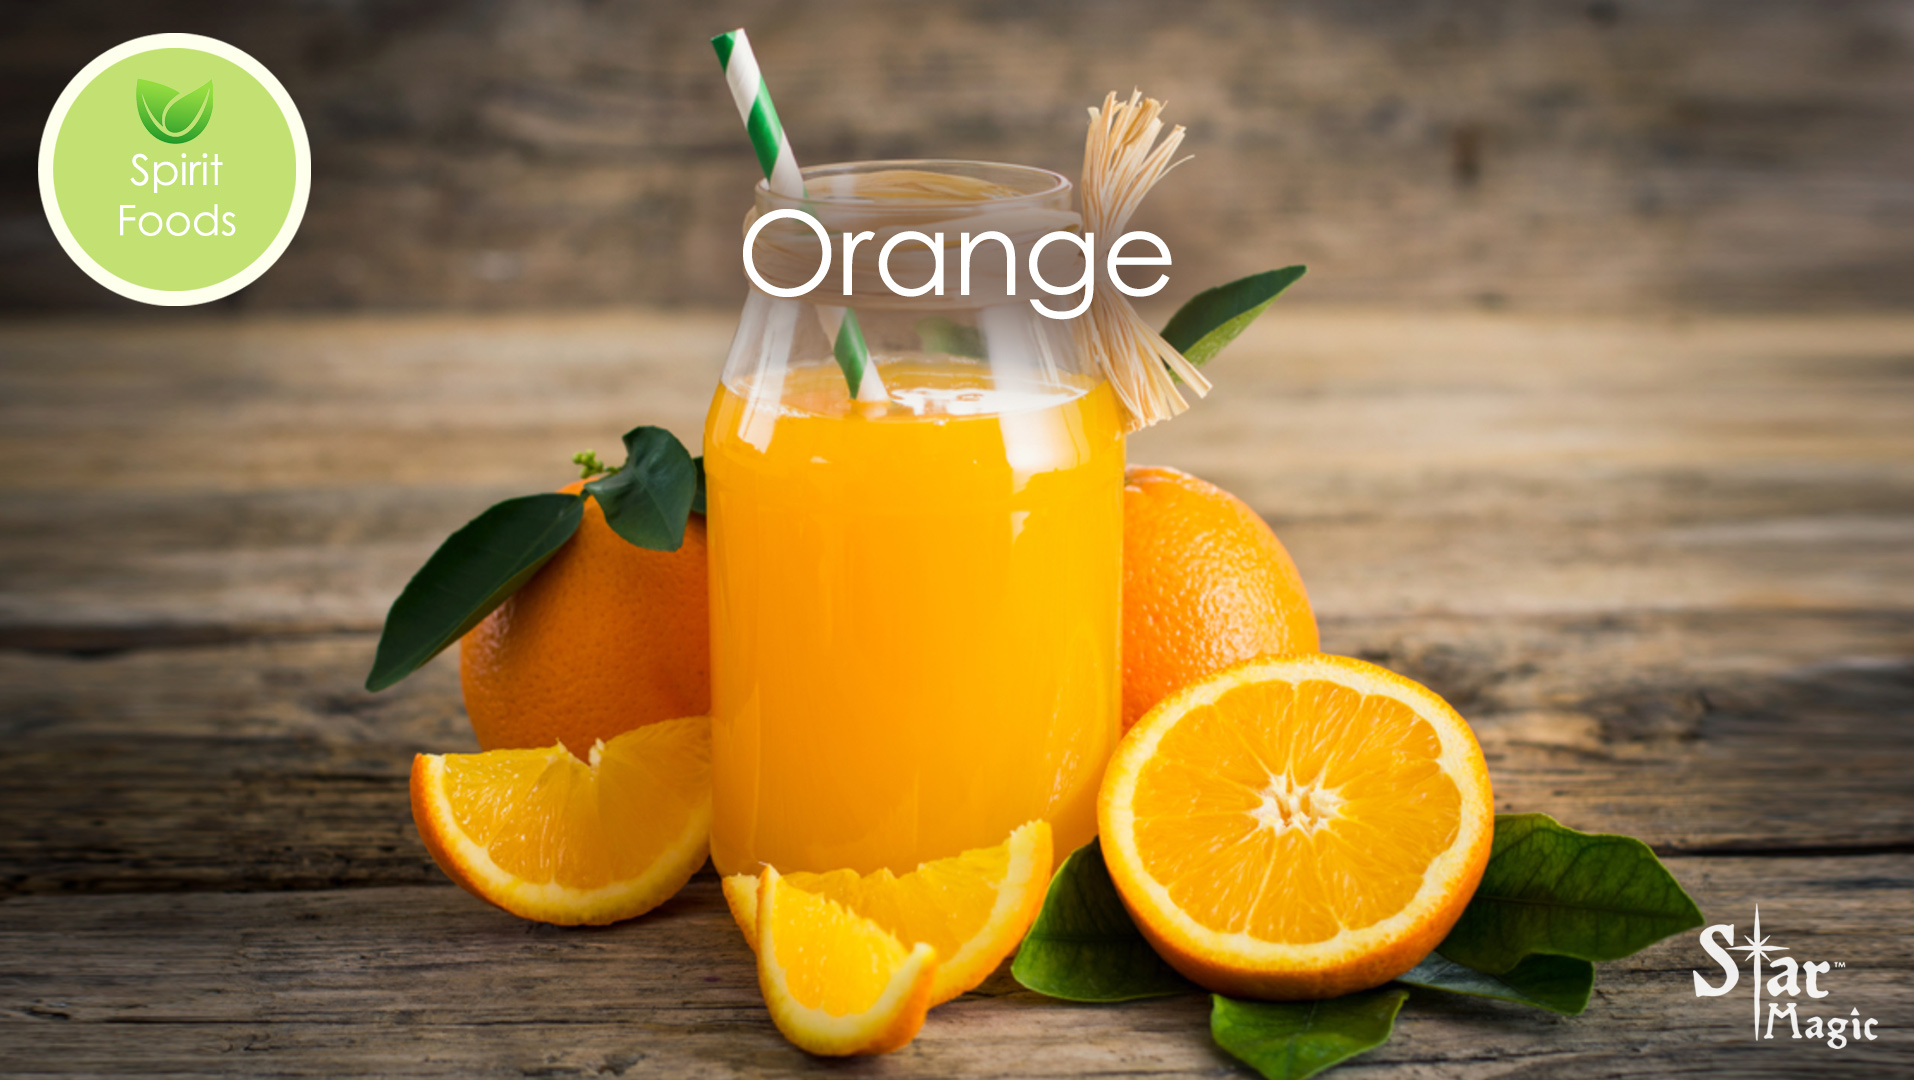 Spirit Food – Orange